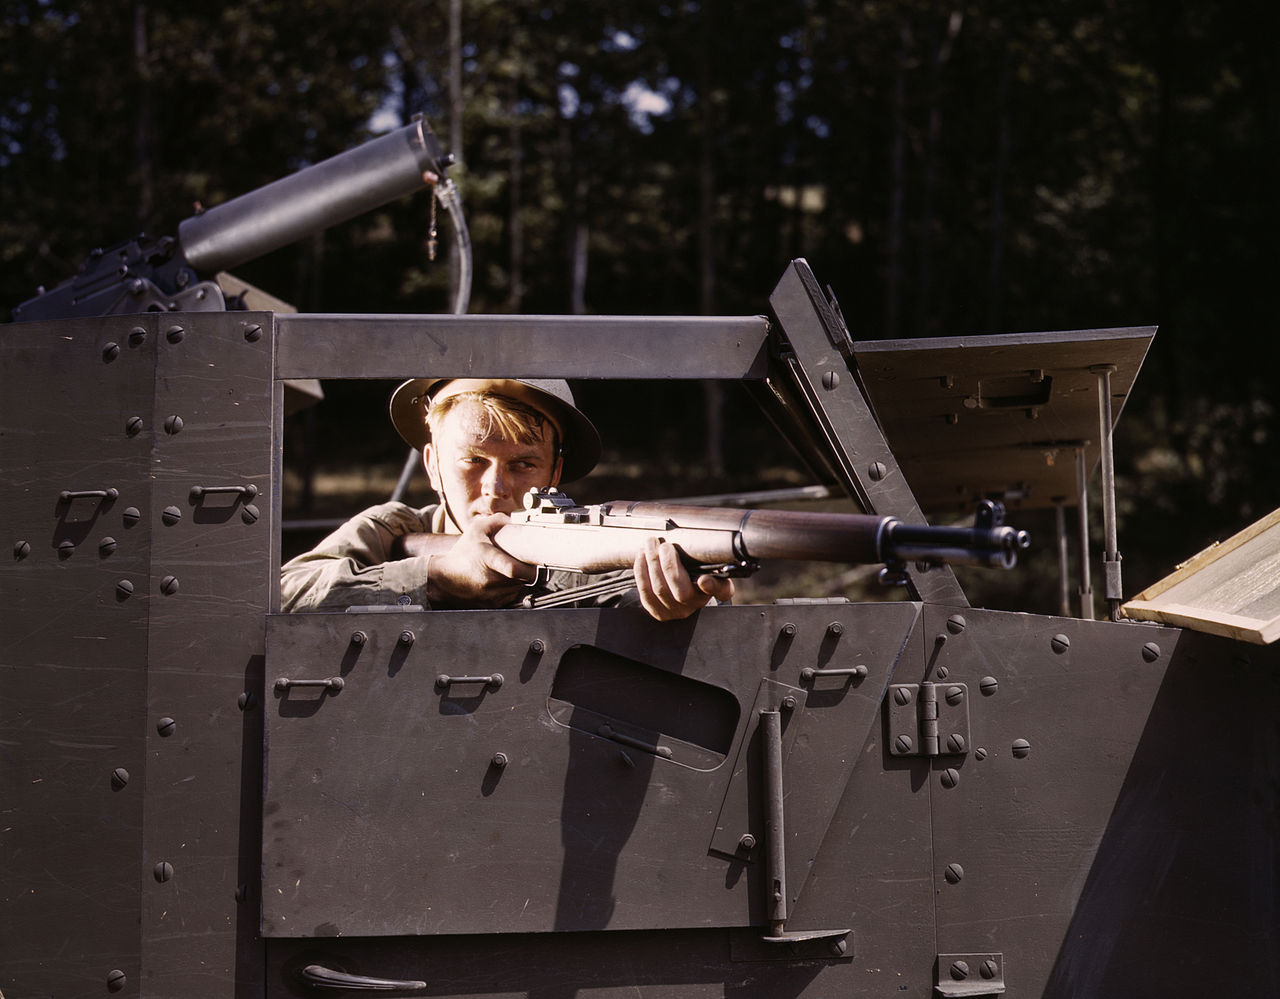 Halftrack infantryman with Garand rifle, Ft. Knox, KY, 1942